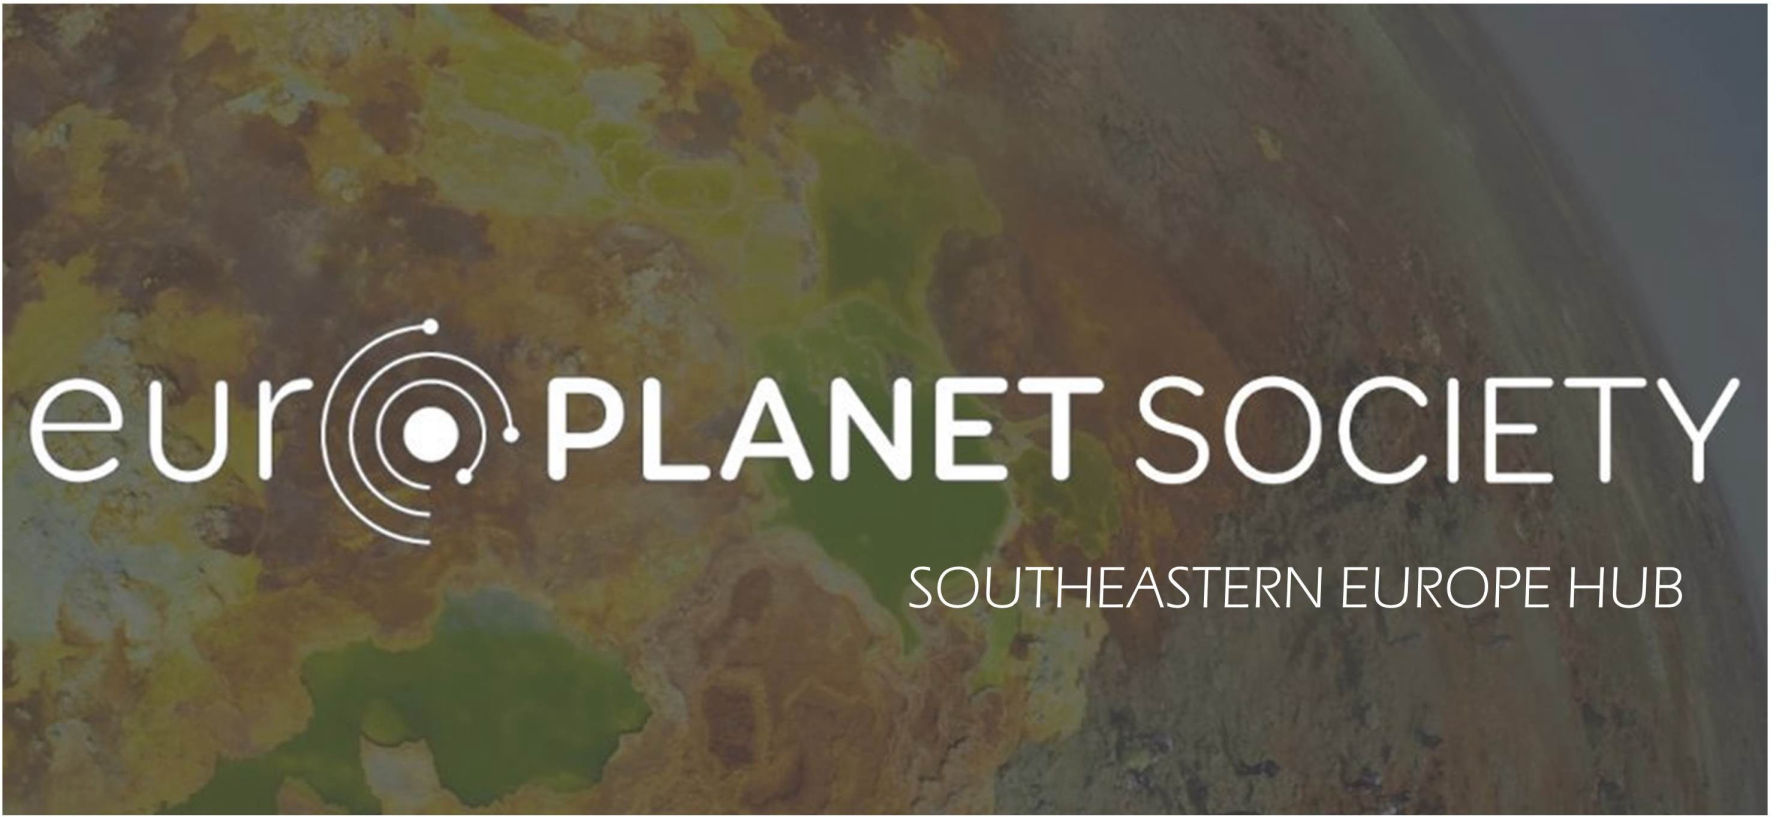 Europlanet Society South Eastern Europe Hub